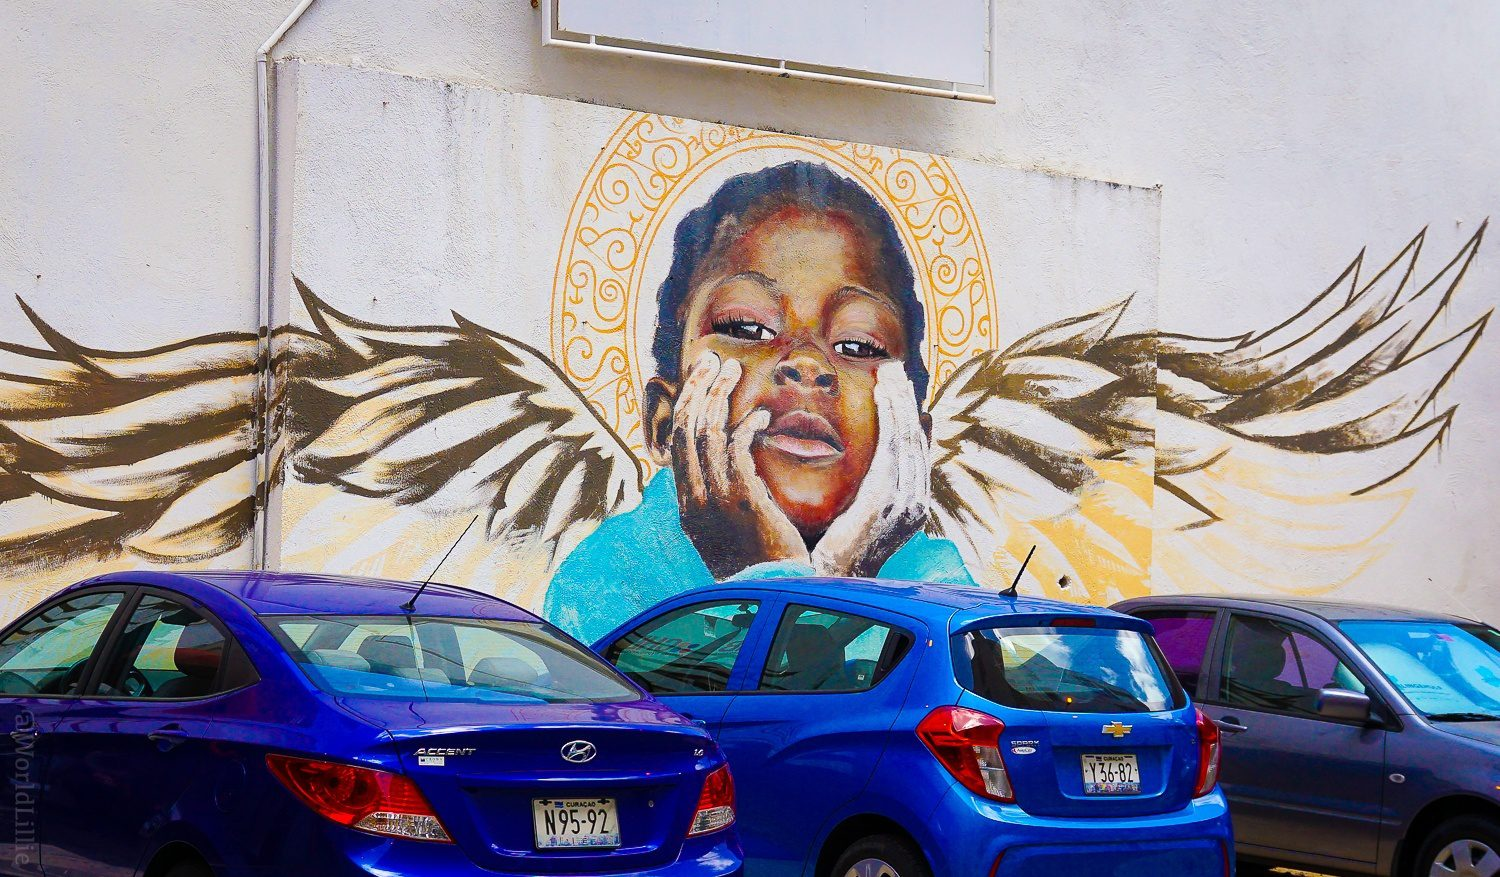 A stunning mural in Willemstad.